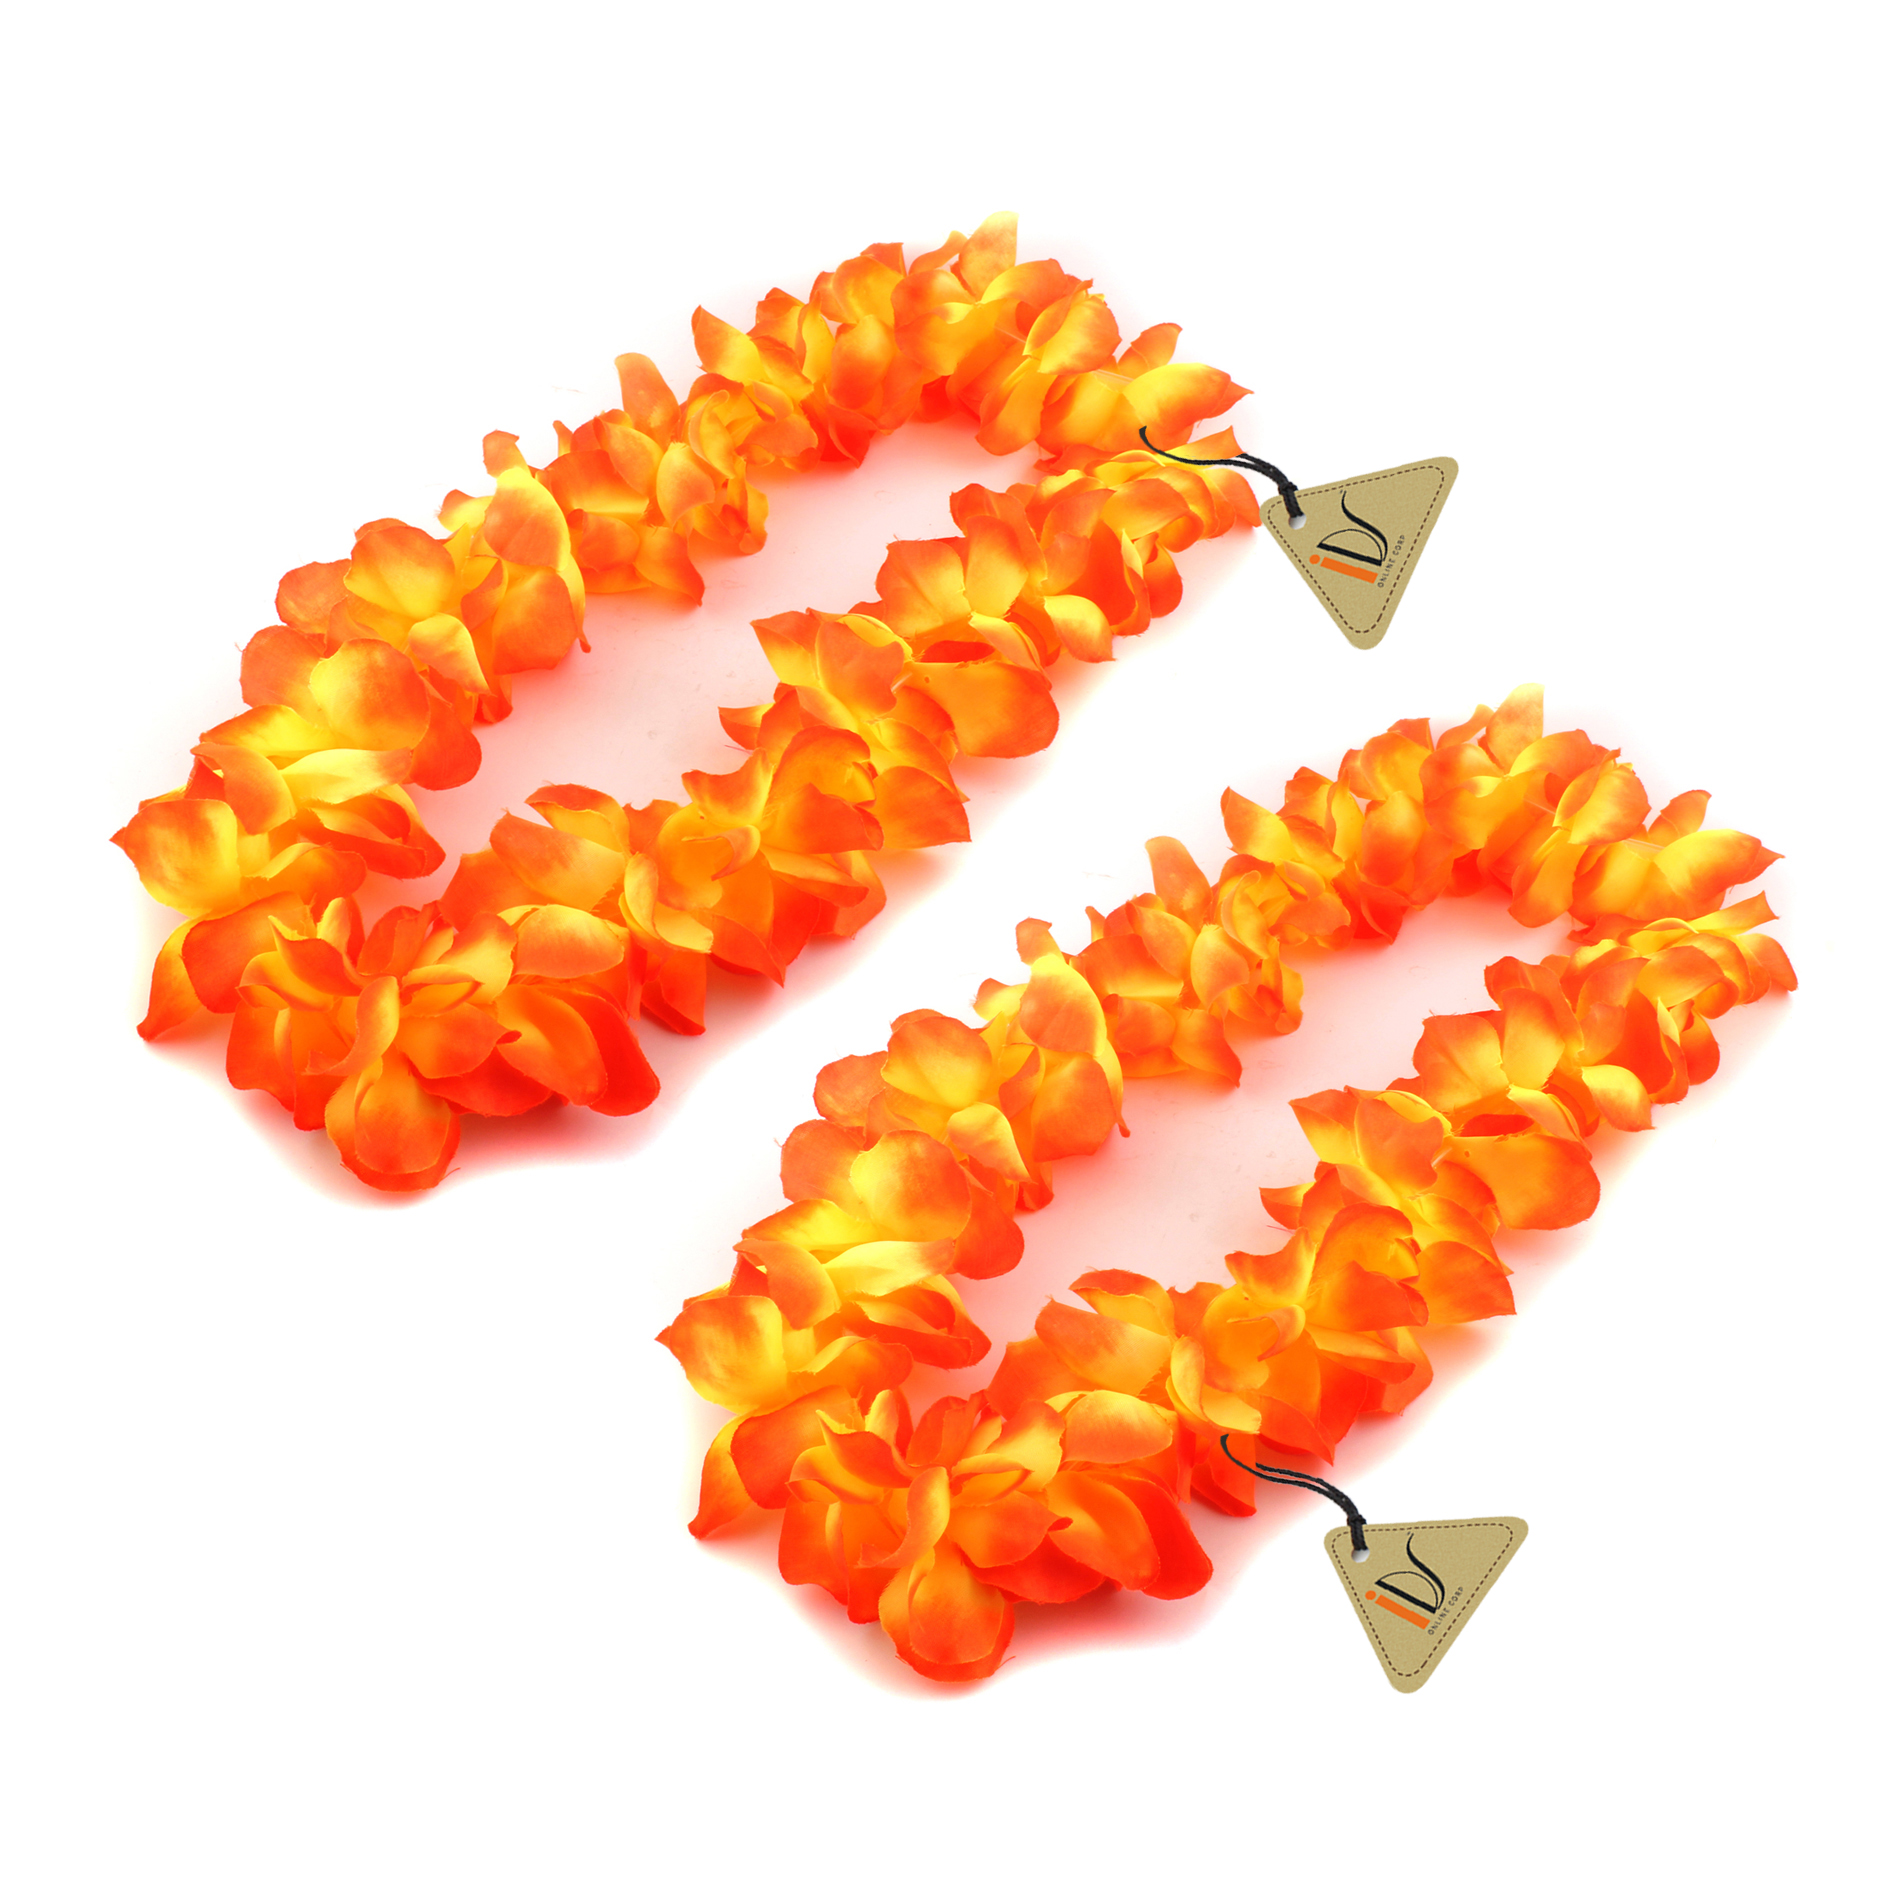 Orange Hawaiian Ruffled Simulated Silk Flower Luau Leis Necklace Accessories for Island Beach Theme Party Costumes, 2 Count